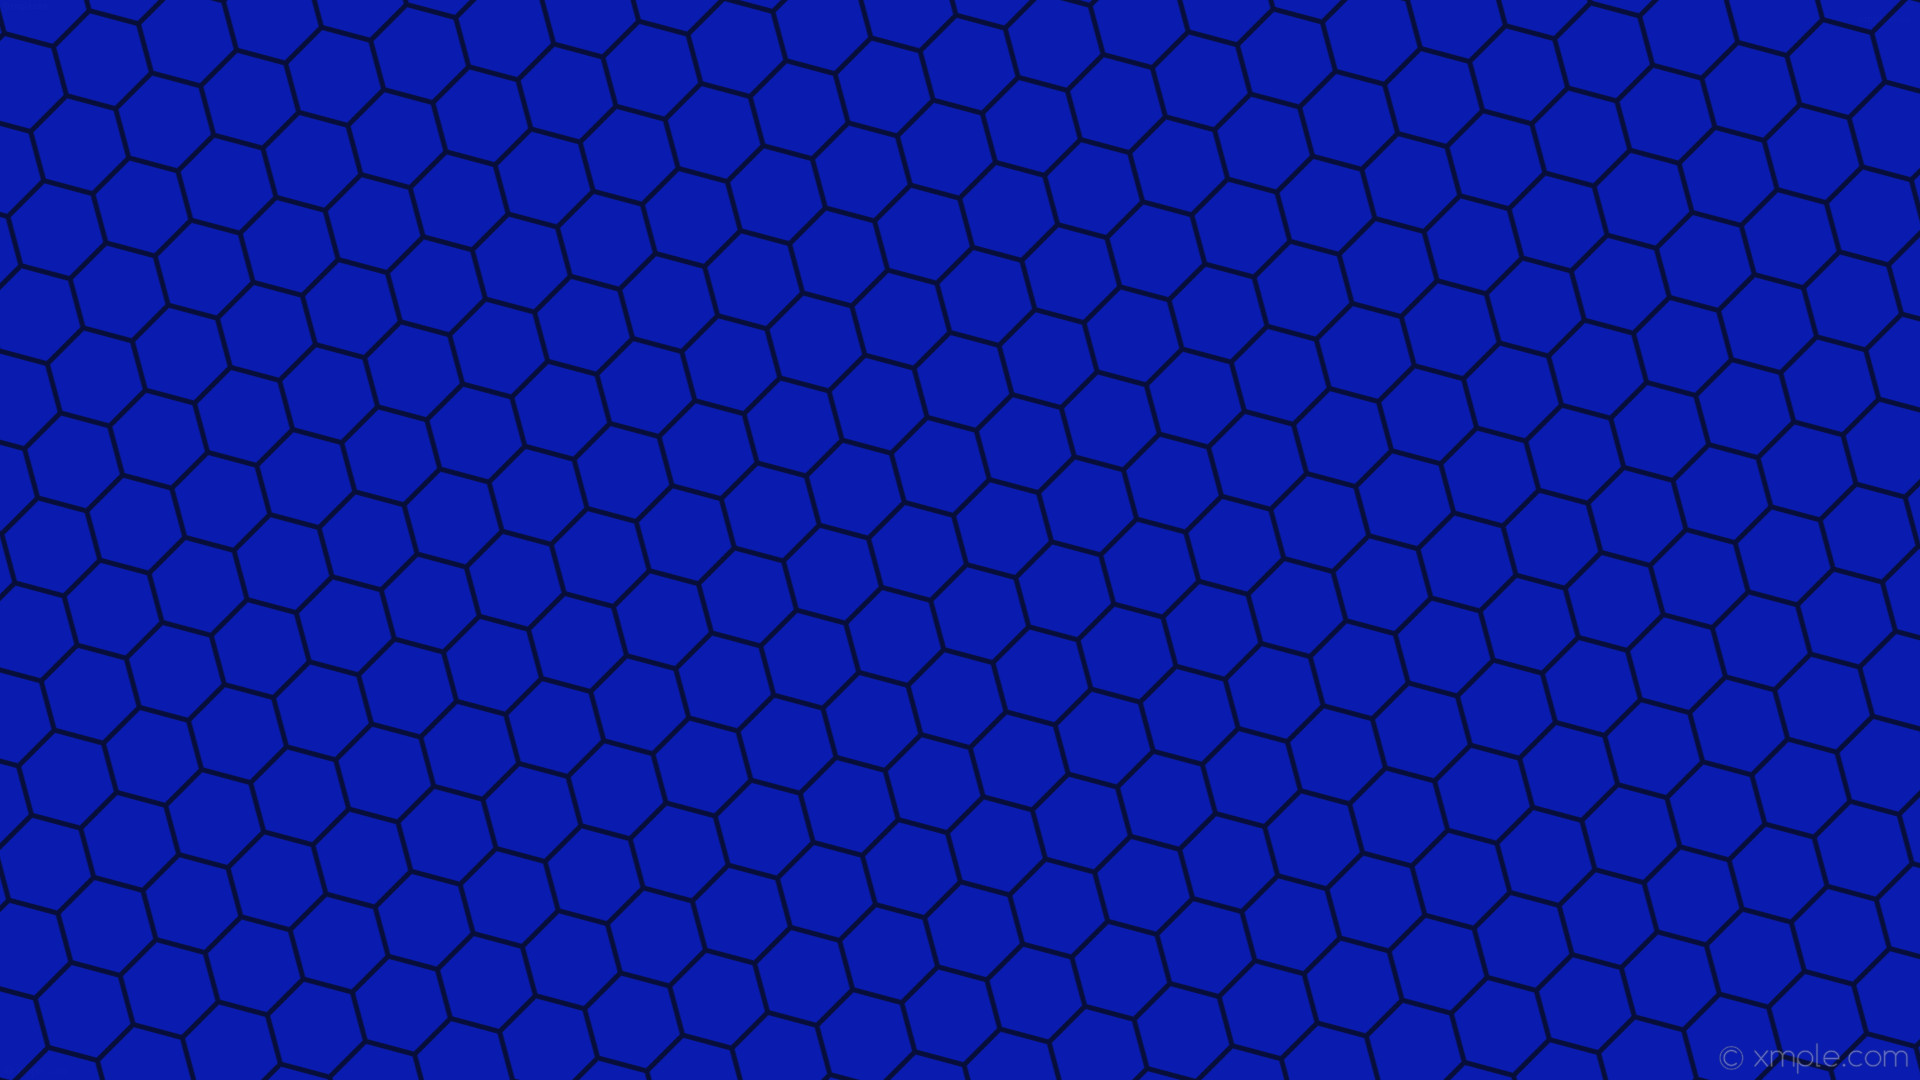 Res: 1920x1080, wallpaper hexagon honeycomb blue beehive dark blue #091caf #080e3a diagonal  15° 5px 88px